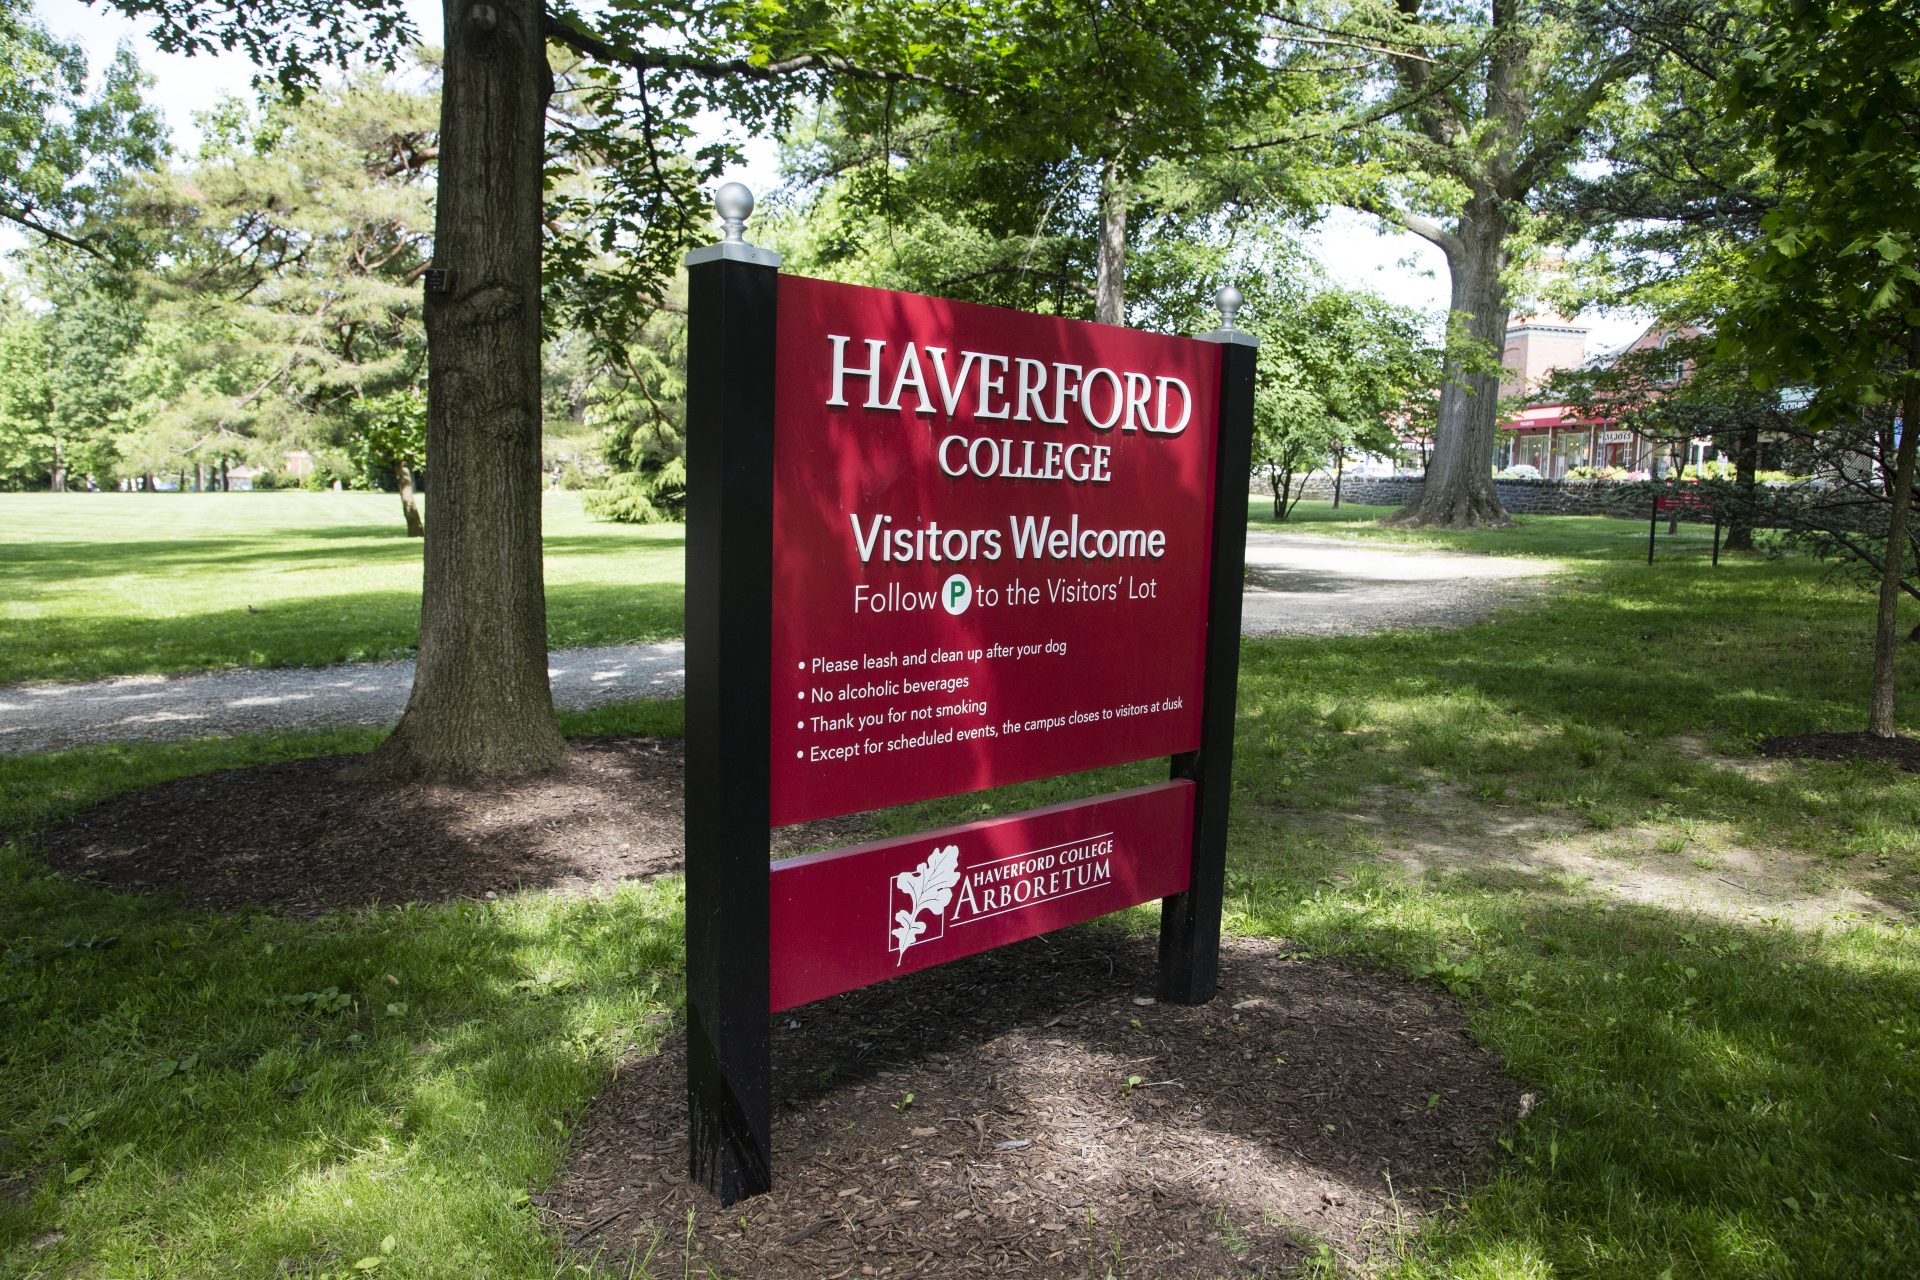 Haverford College in Haverford, Pa., Wednesday, May 22, 2019.